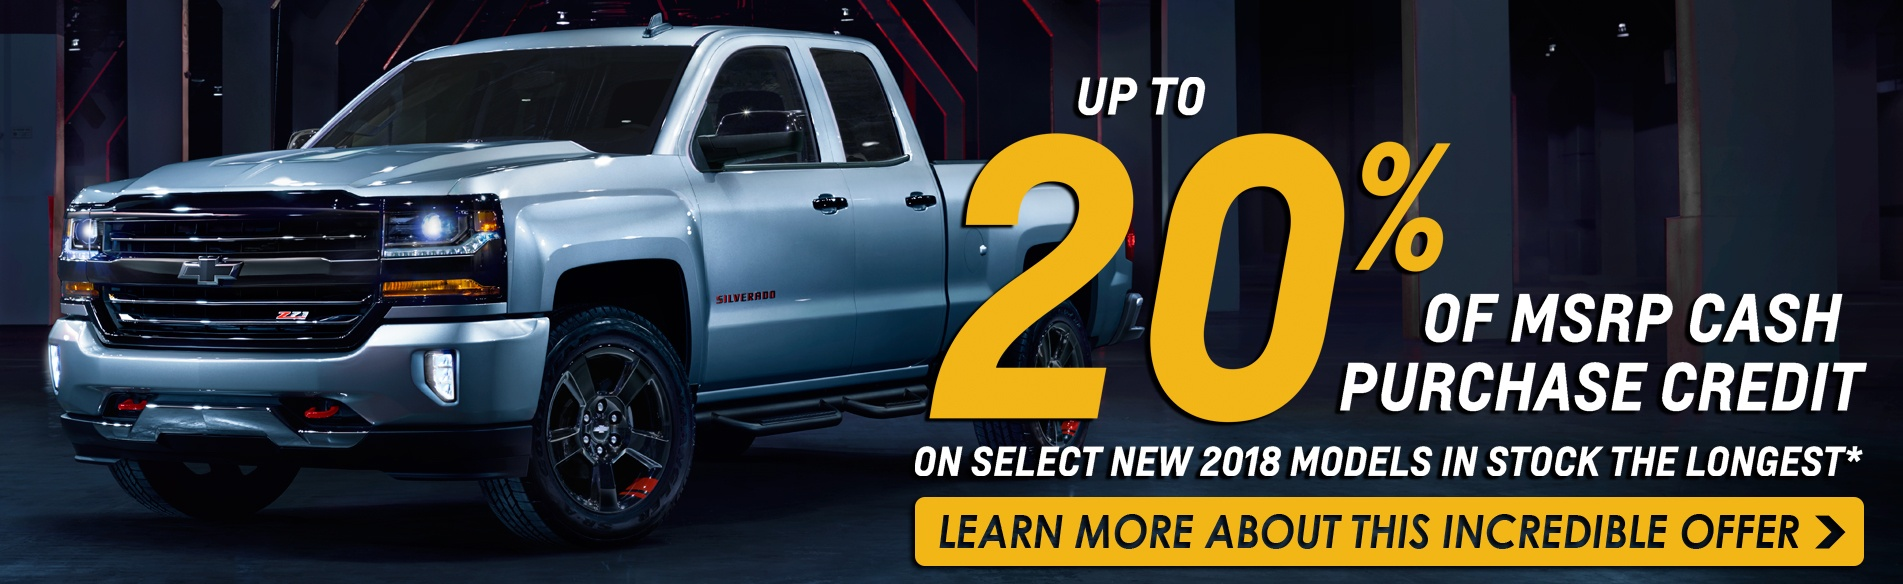 Get up to 20% off MSRP on select 2018 models in stock the longest in Gerogetown